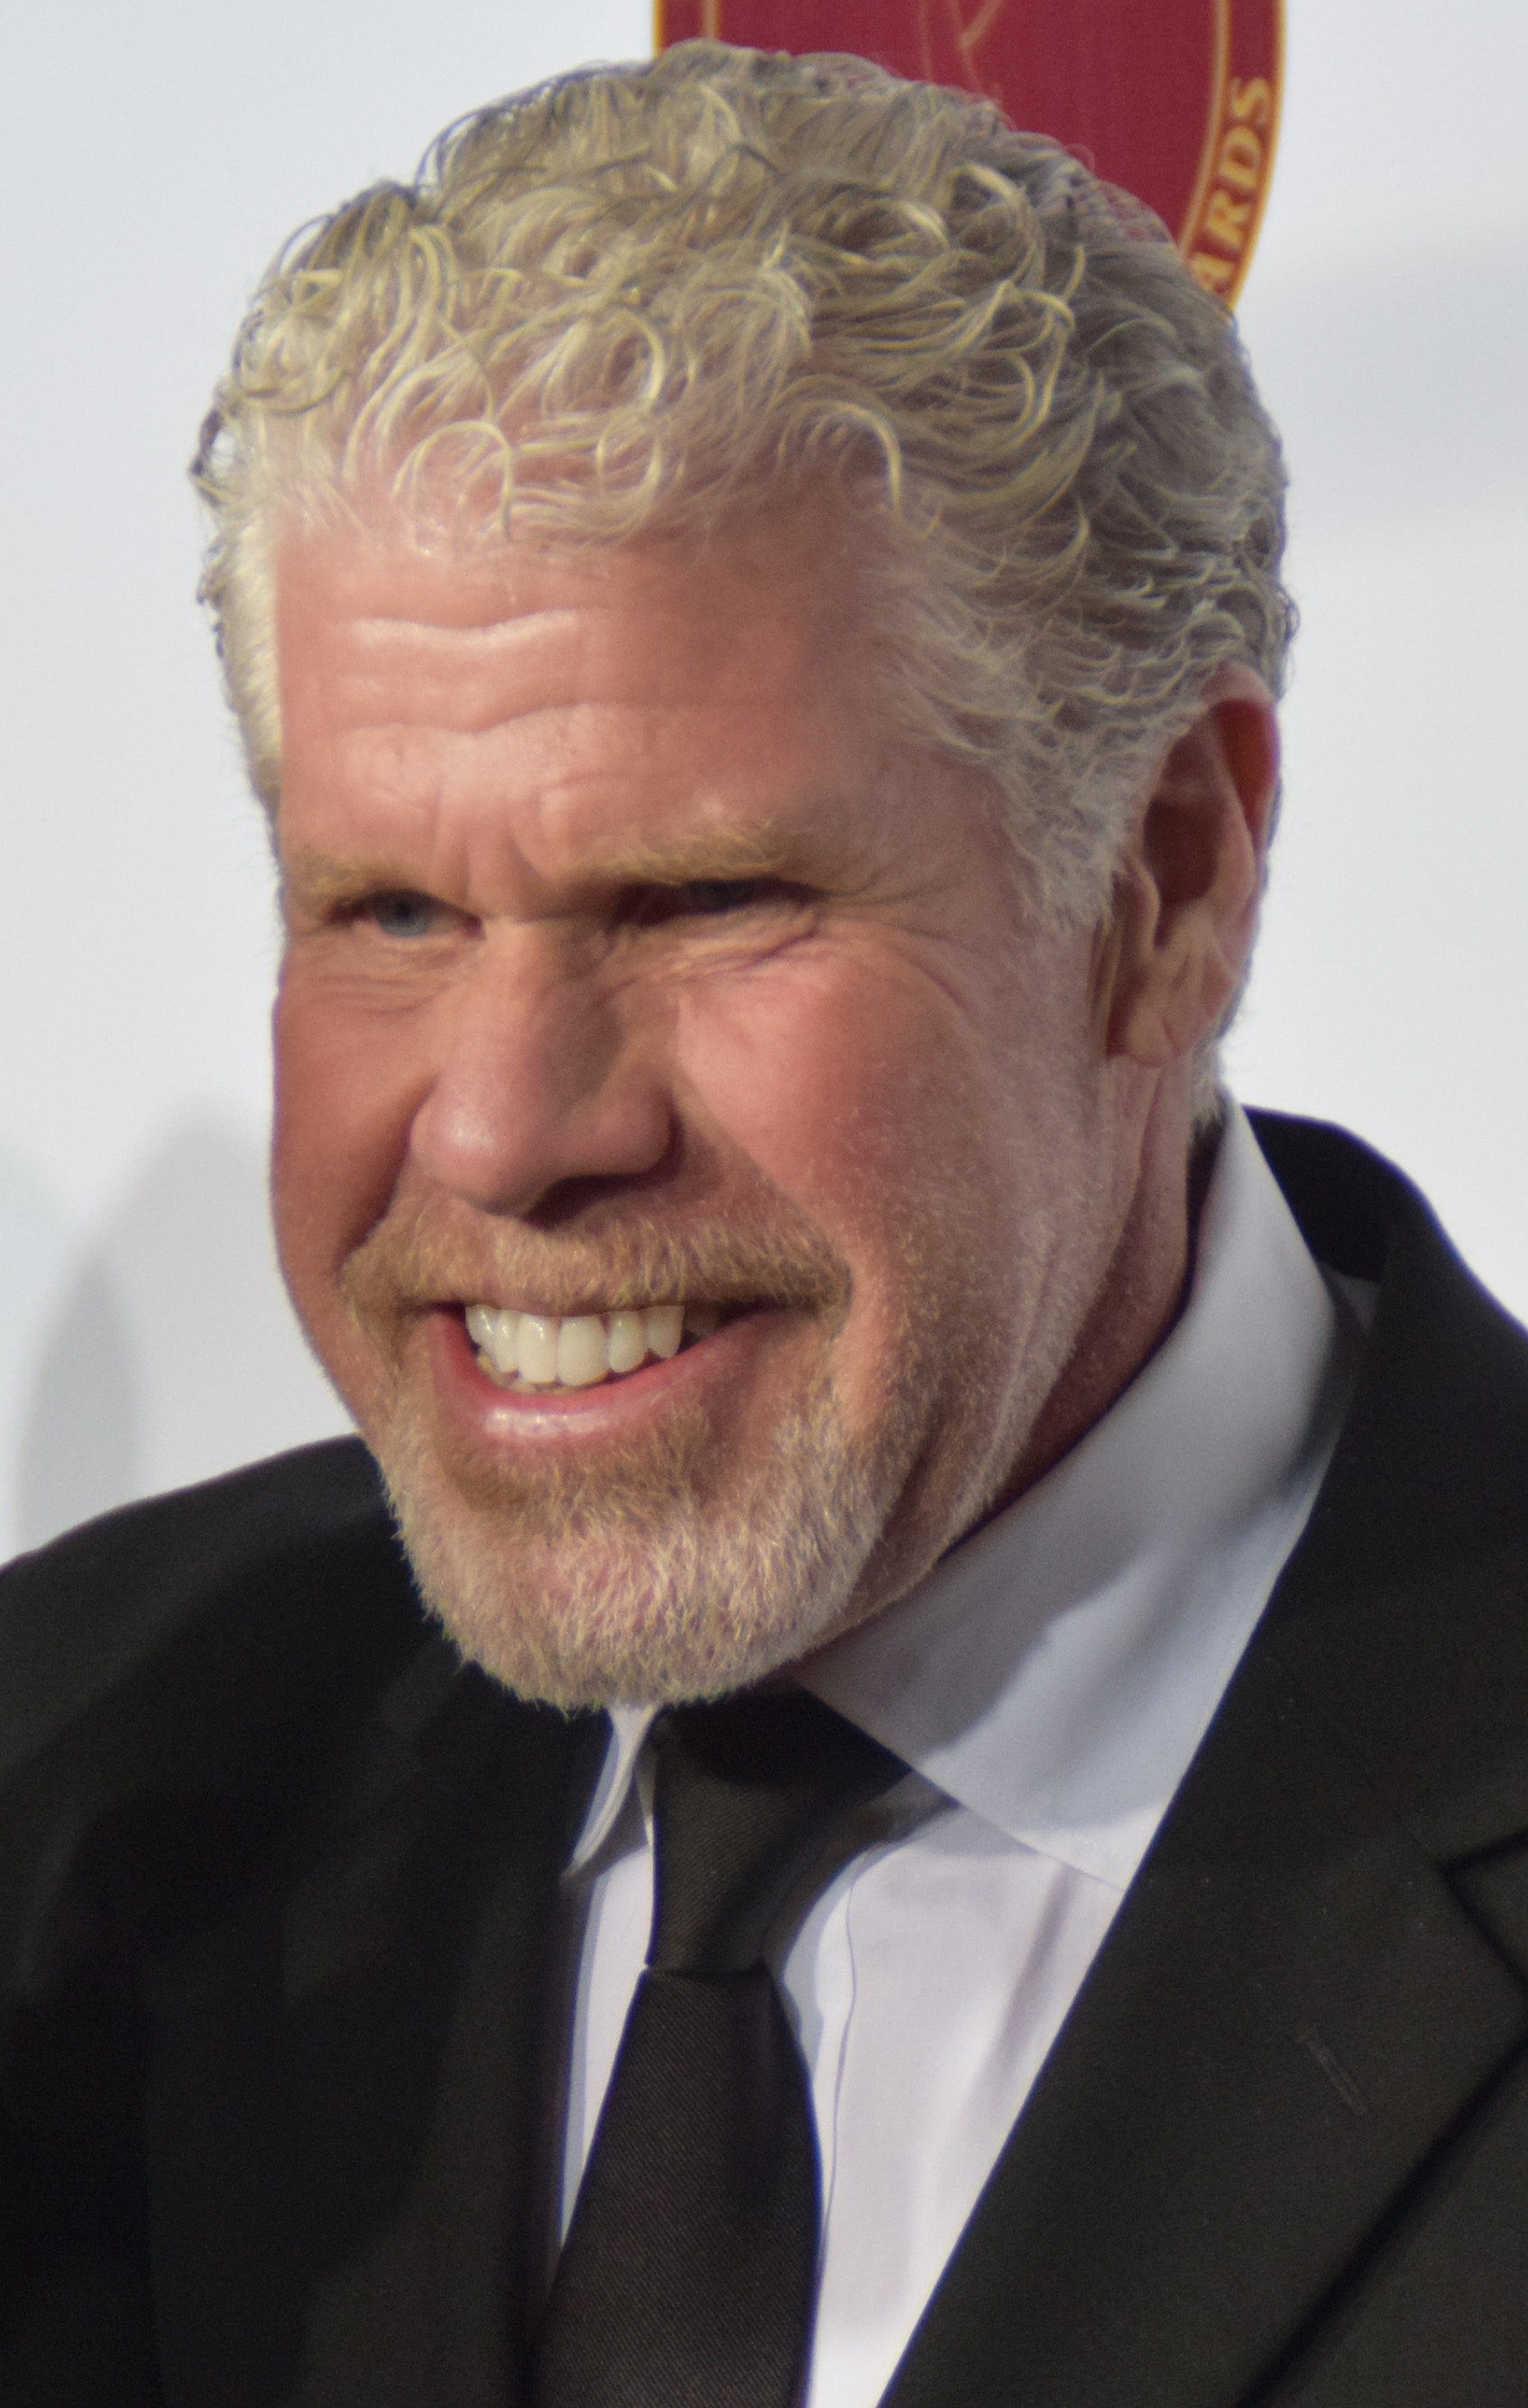 Ron Perlman earned a  million dollar salary, leaving the net worth at 15 million in 2017